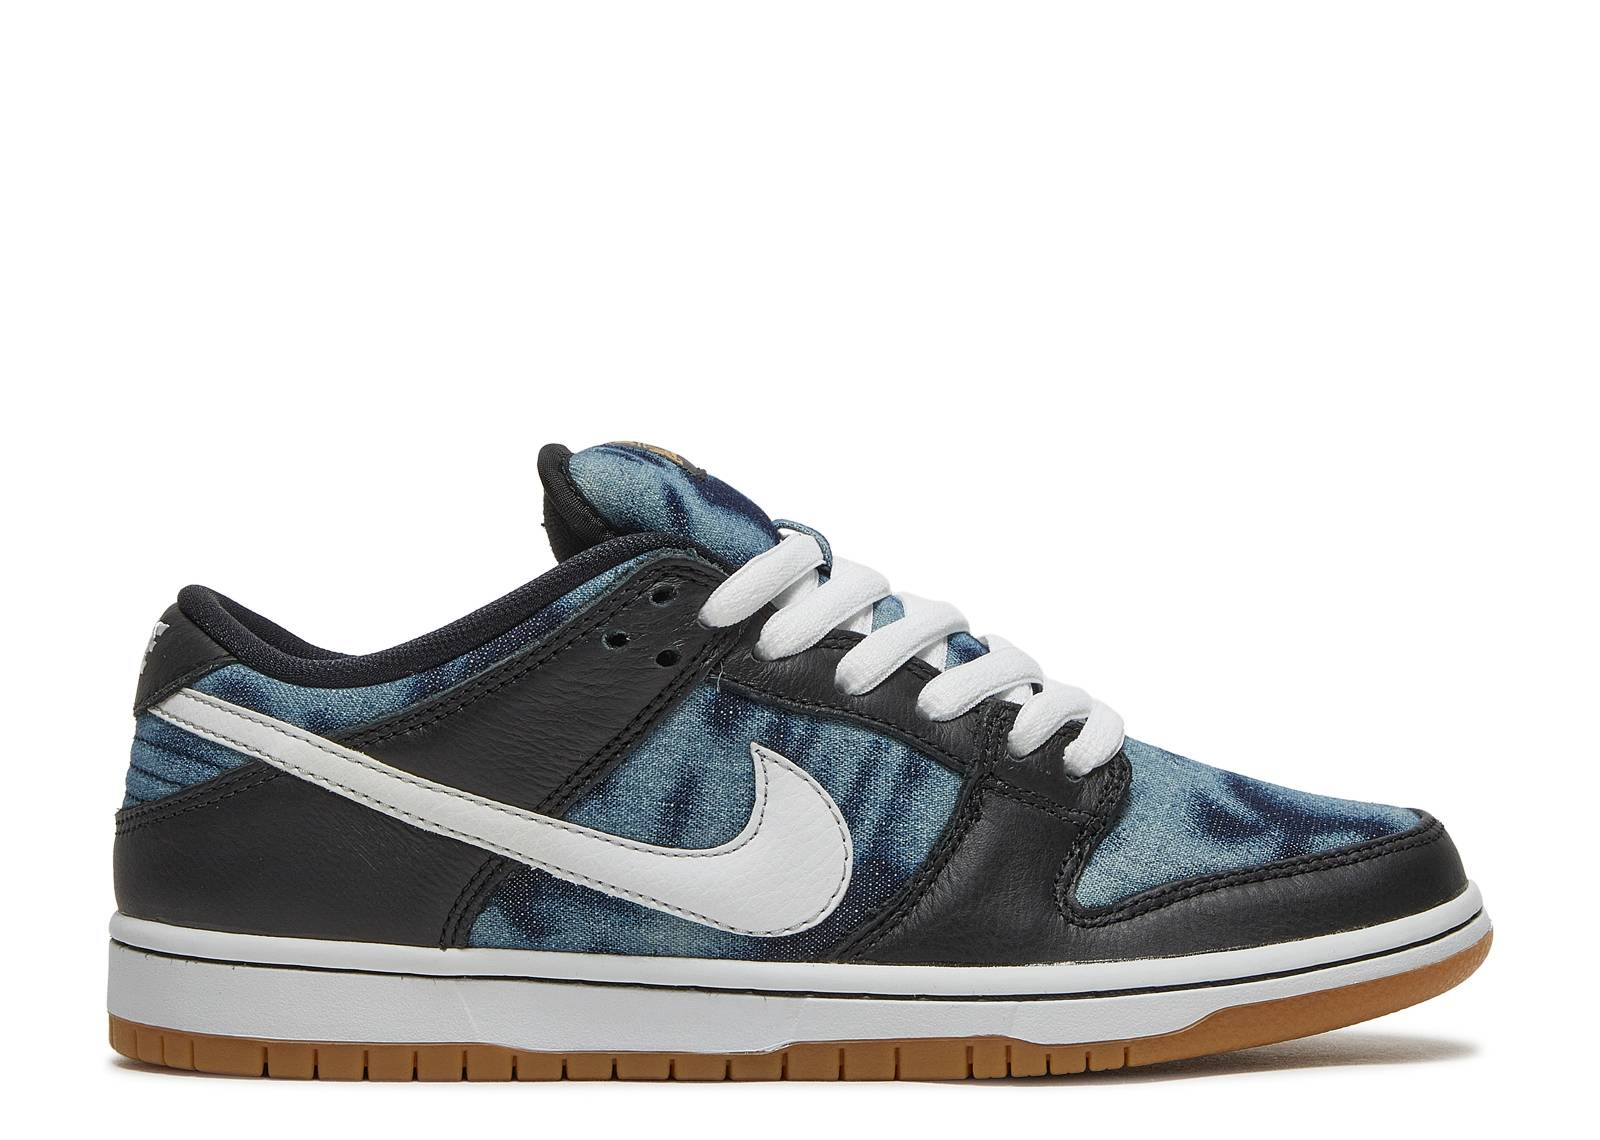 Nike Dunk SB Low Fast Times Sneakers (Black/White-Midnight Navy)